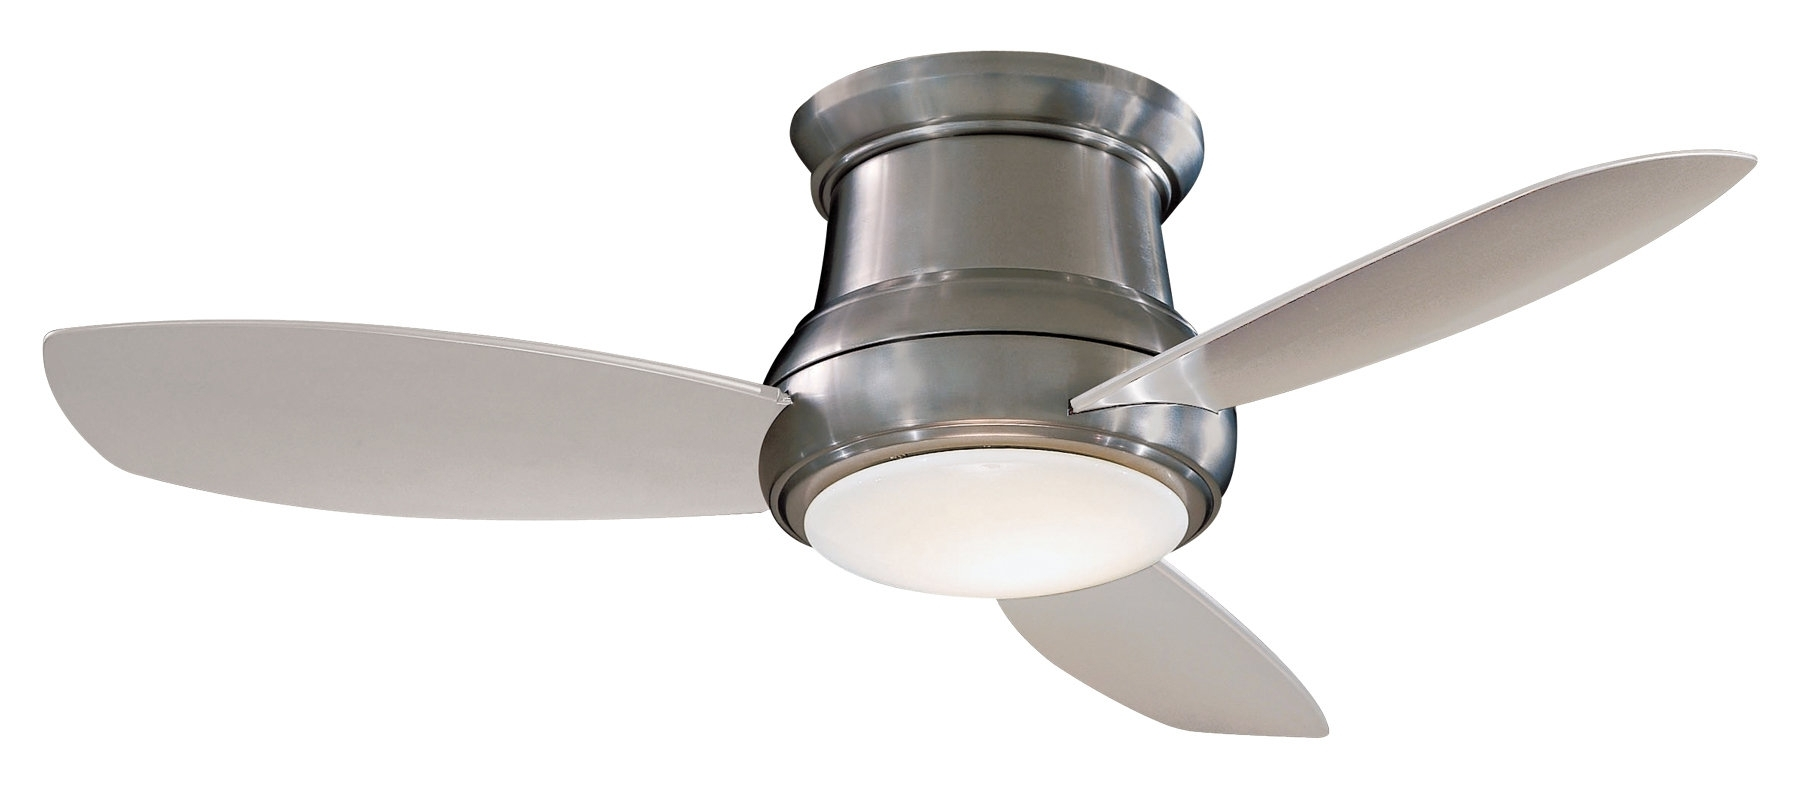 Famous Heavy Duty Outdoor Ceiling Fans Regarding 7 Types Of Ceiling Fans (Gallery 19 of 20)